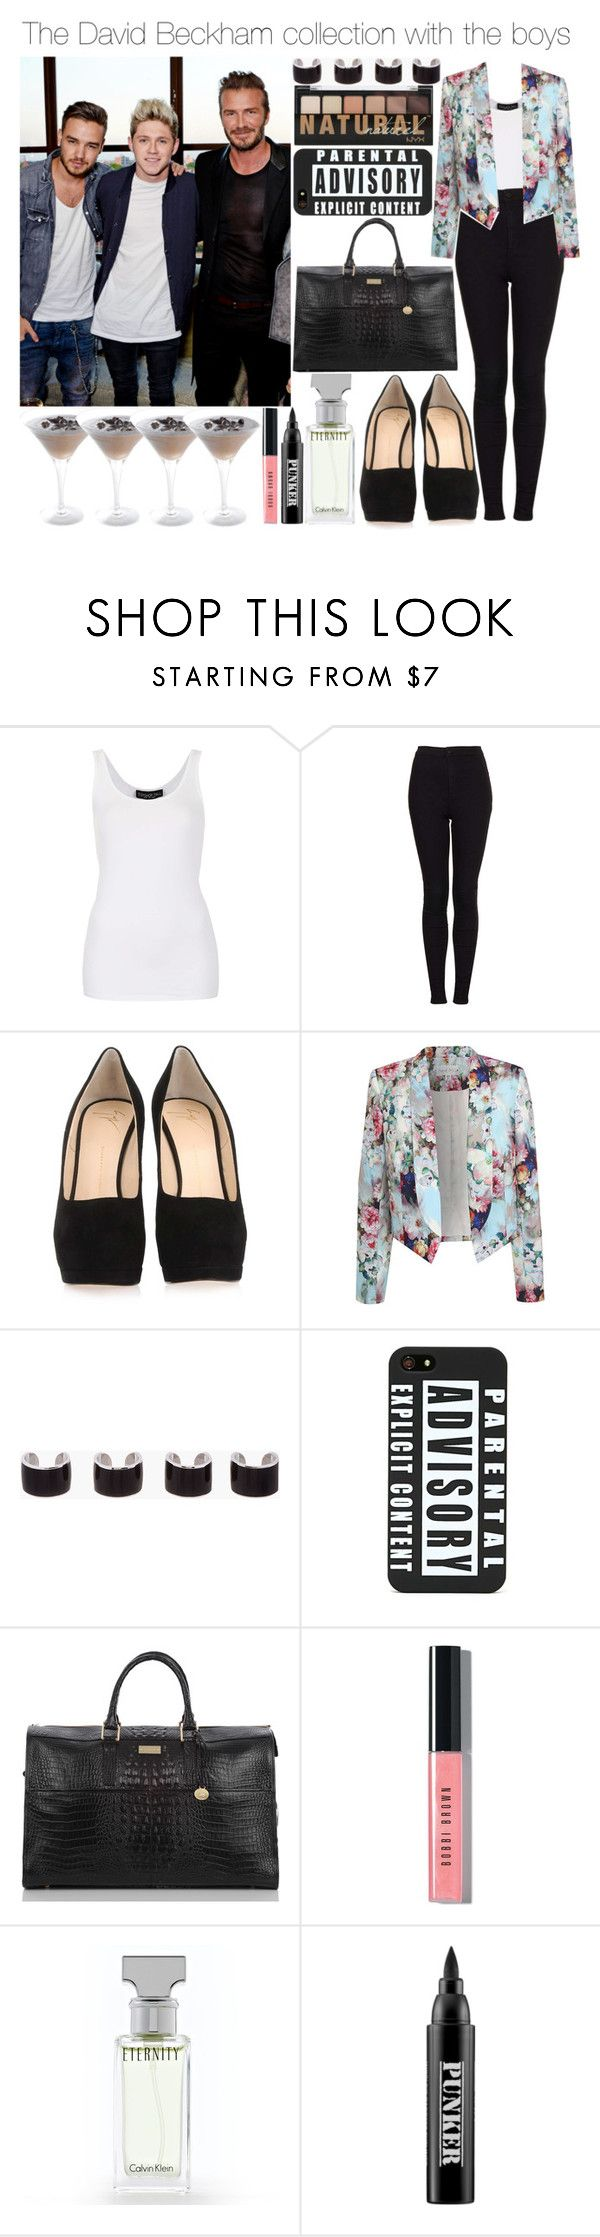 """""""The David Beckham collection with the boys"""" by give-me-love-xox ❤ liked on Polyvore featuring Topshop, Giuseppe Zanotti, Paper Dolls, Maison Margiela, Brahmin, Bobbi Brown Cosmetics, Calvin Klein and Ardency Inn"""